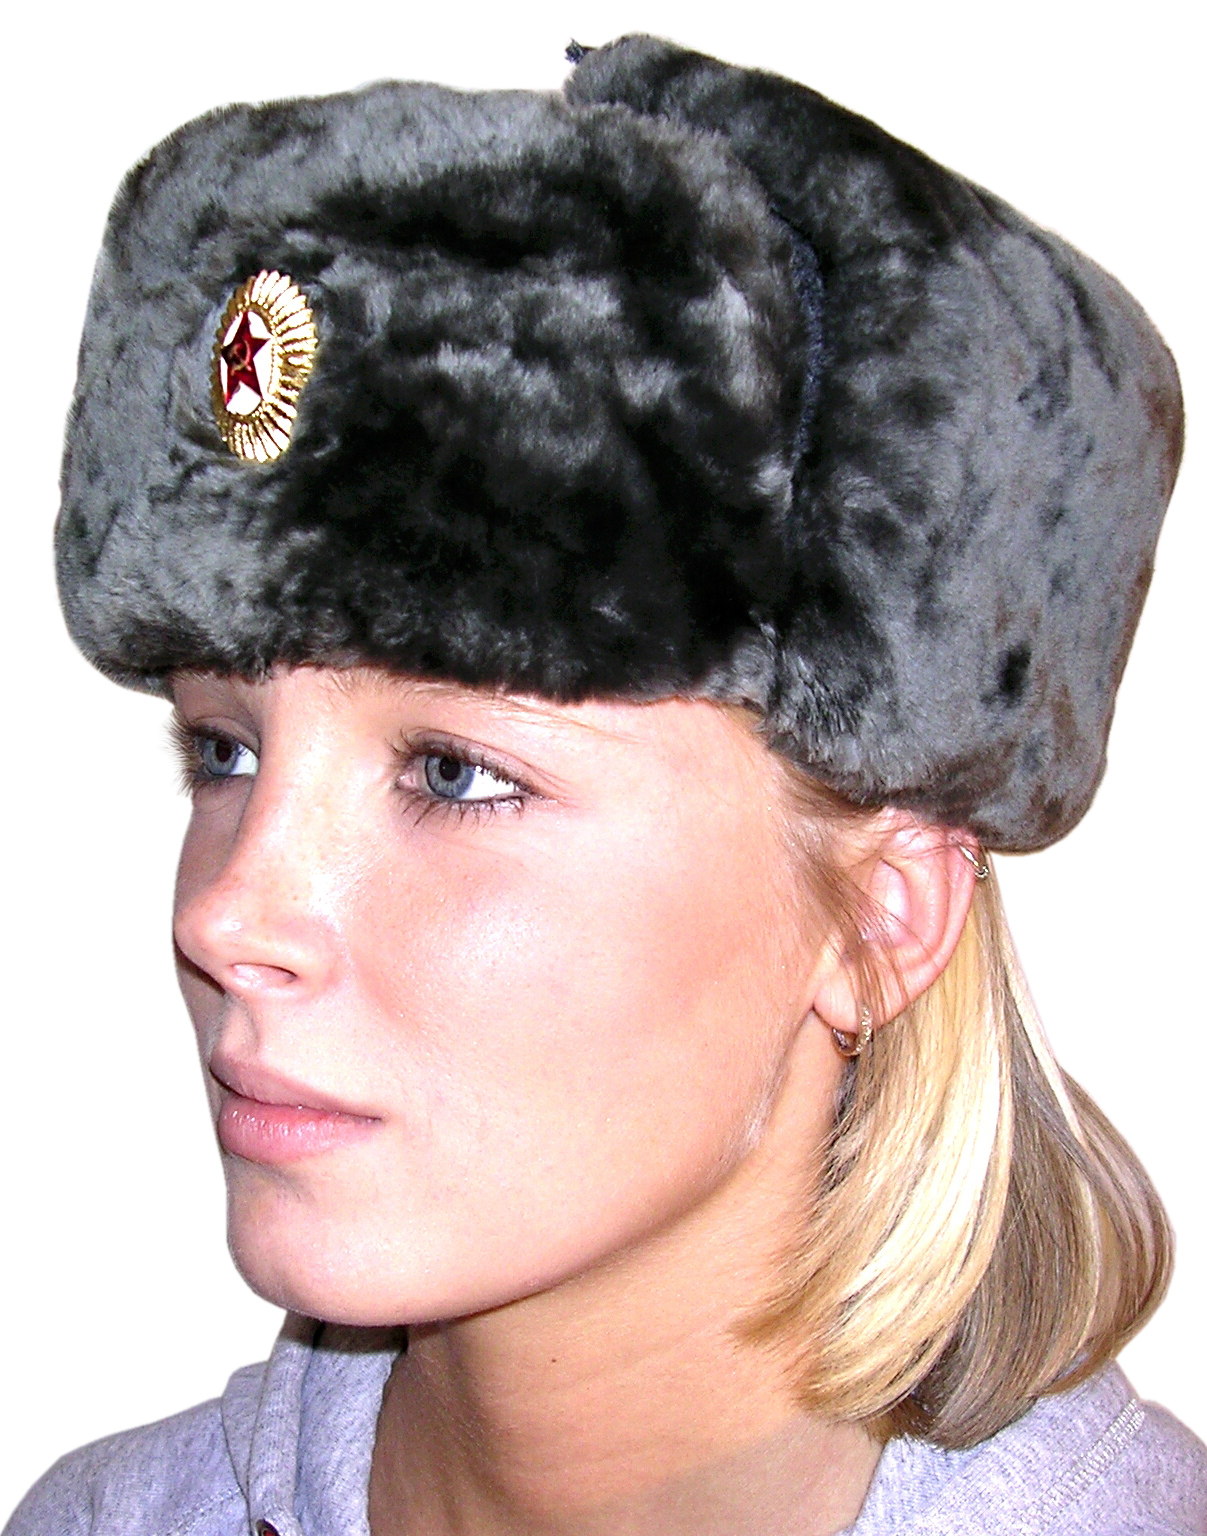 afaa483c2a72f Soviet army officer lamb fur hat. Authentic. Made in Soviet Union.